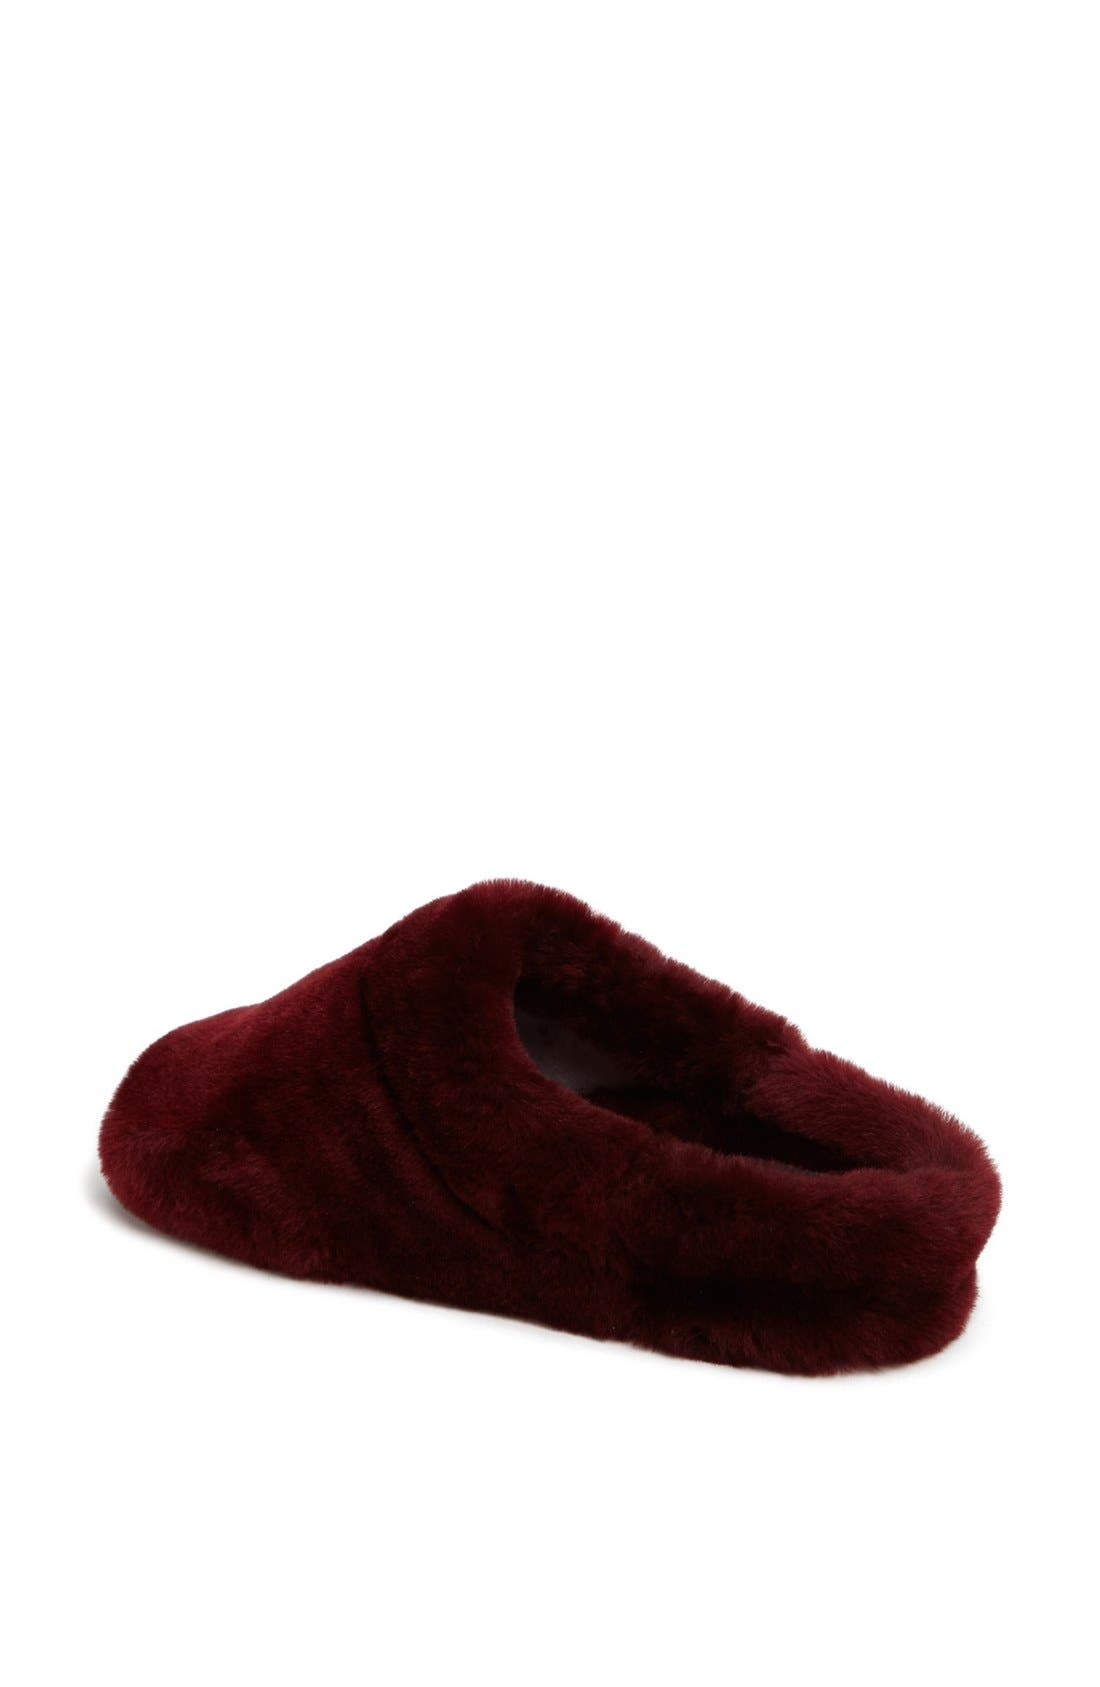 'Gerolding' Slipper,                             Alternate thumbnail 12, color,